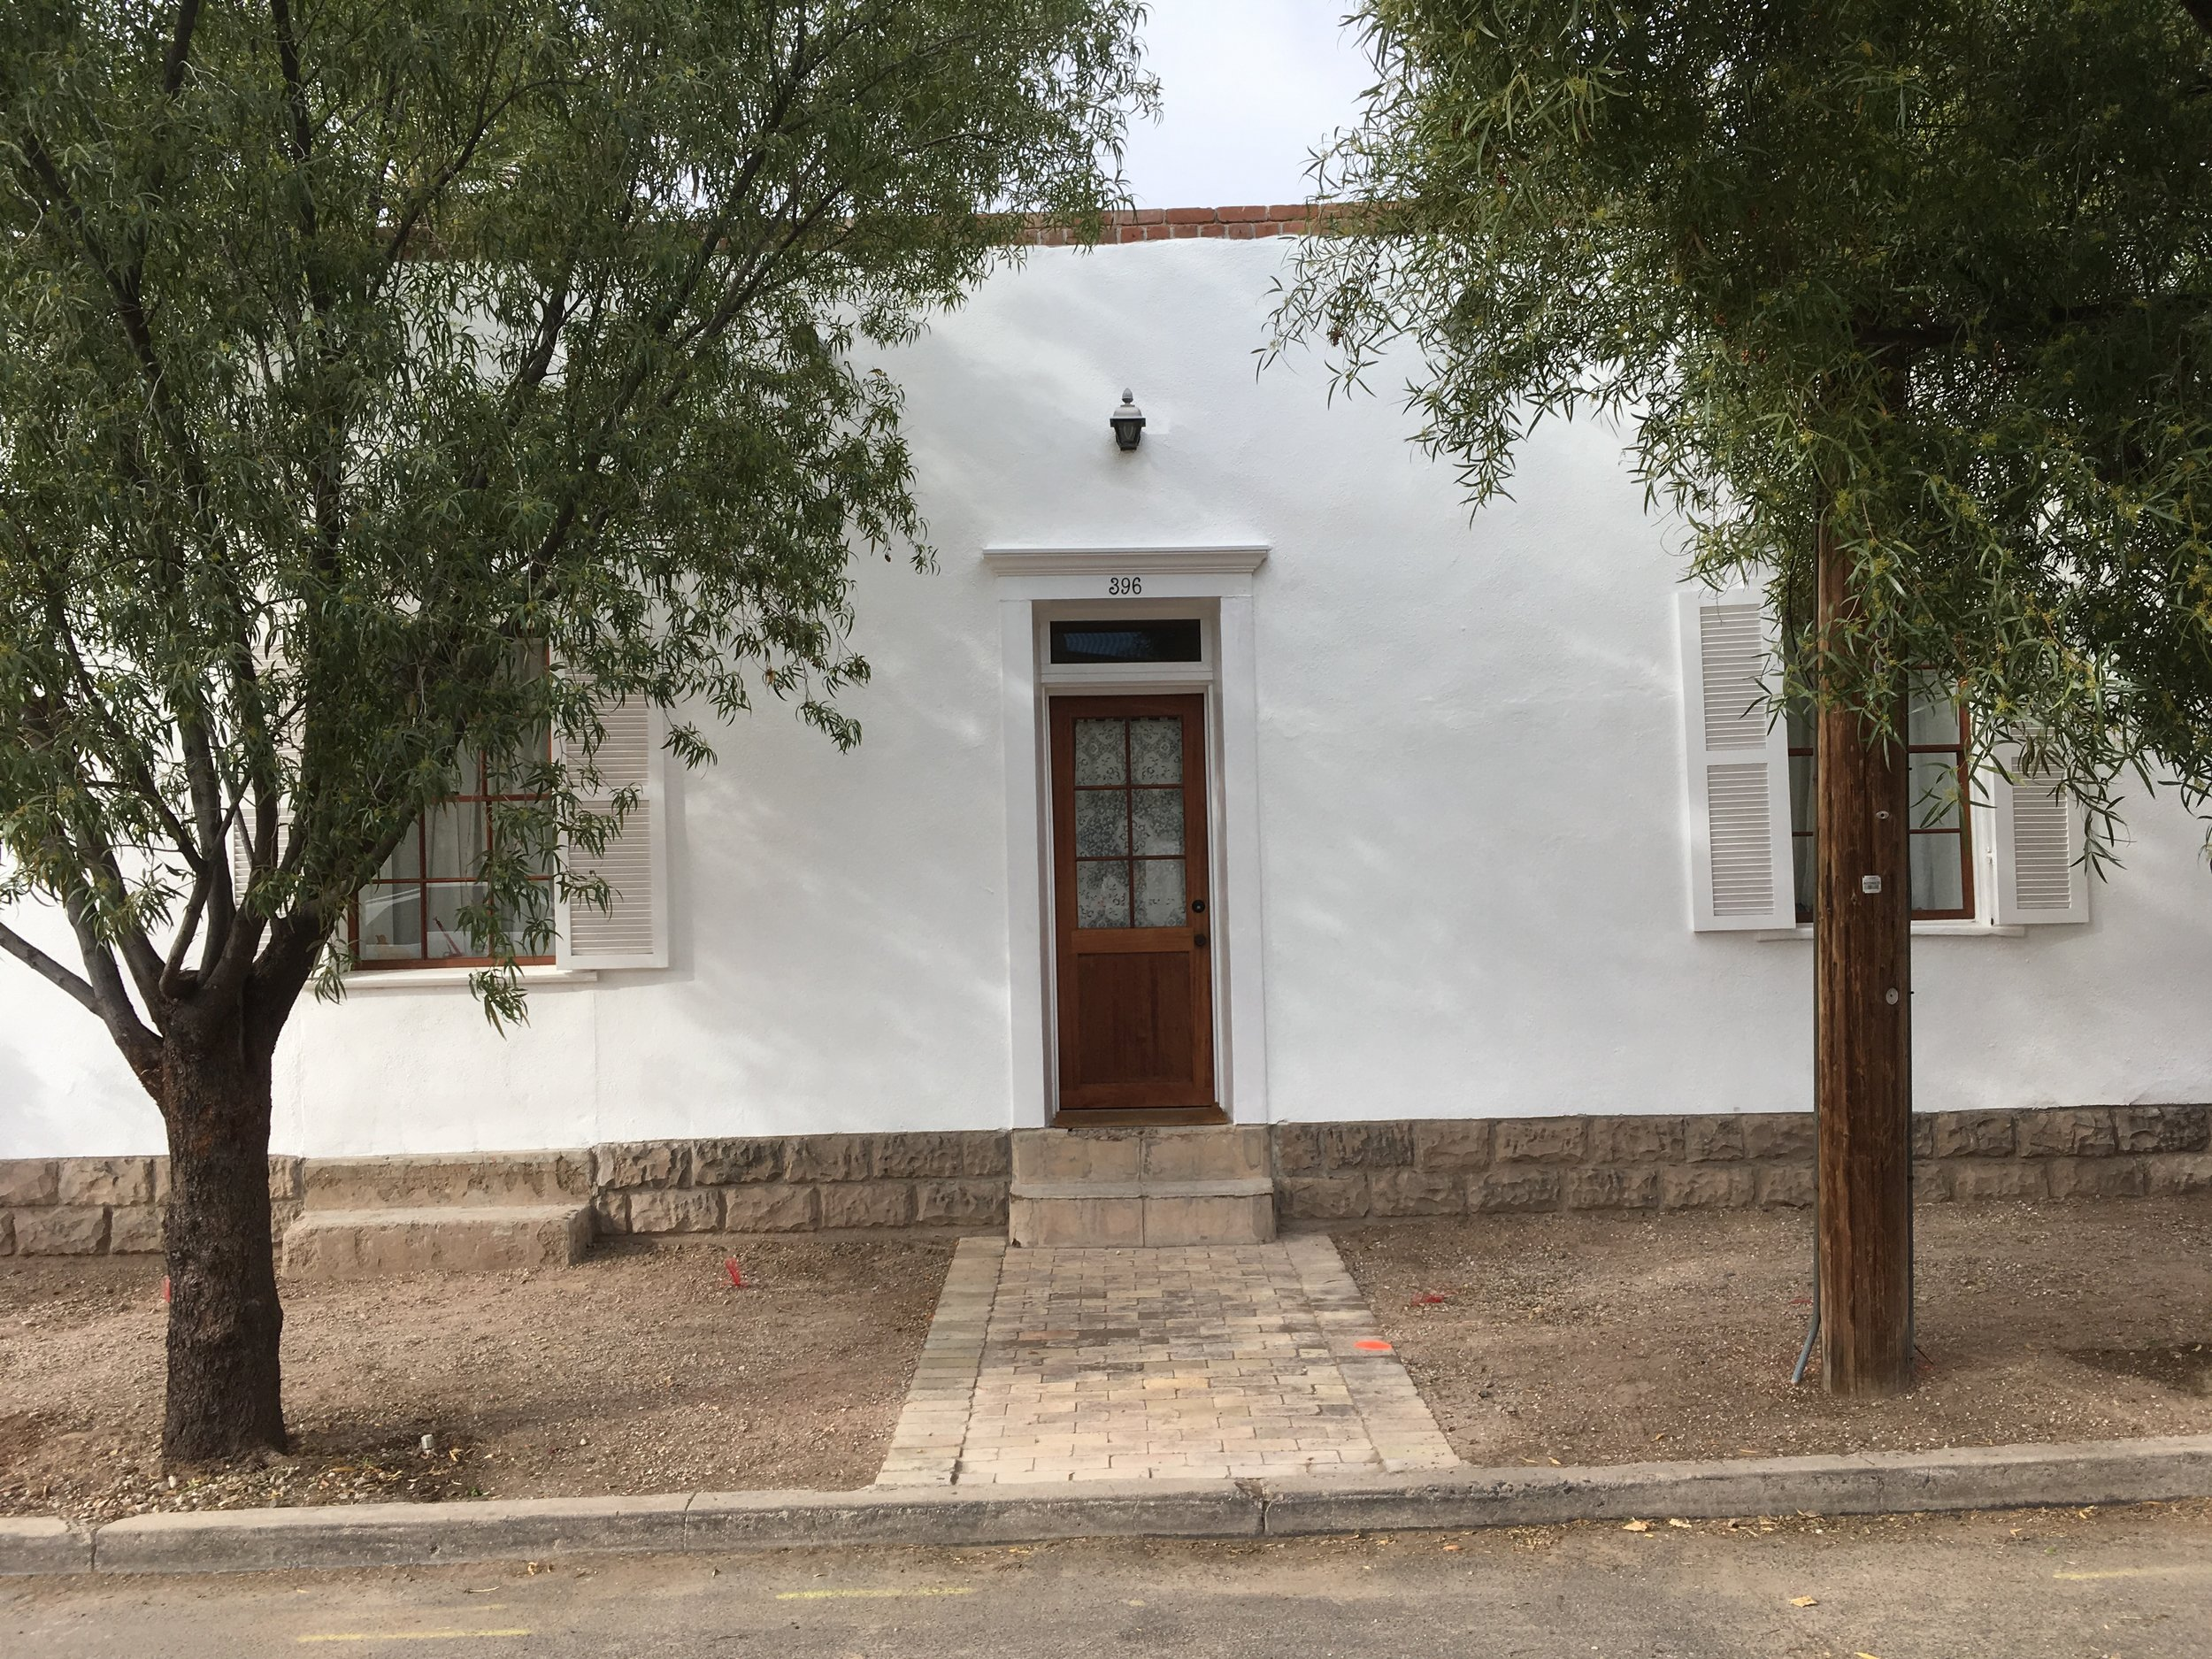 396 S. Convent on Dec. 31, 2018. It's gone white and the door on the left is a door no more.